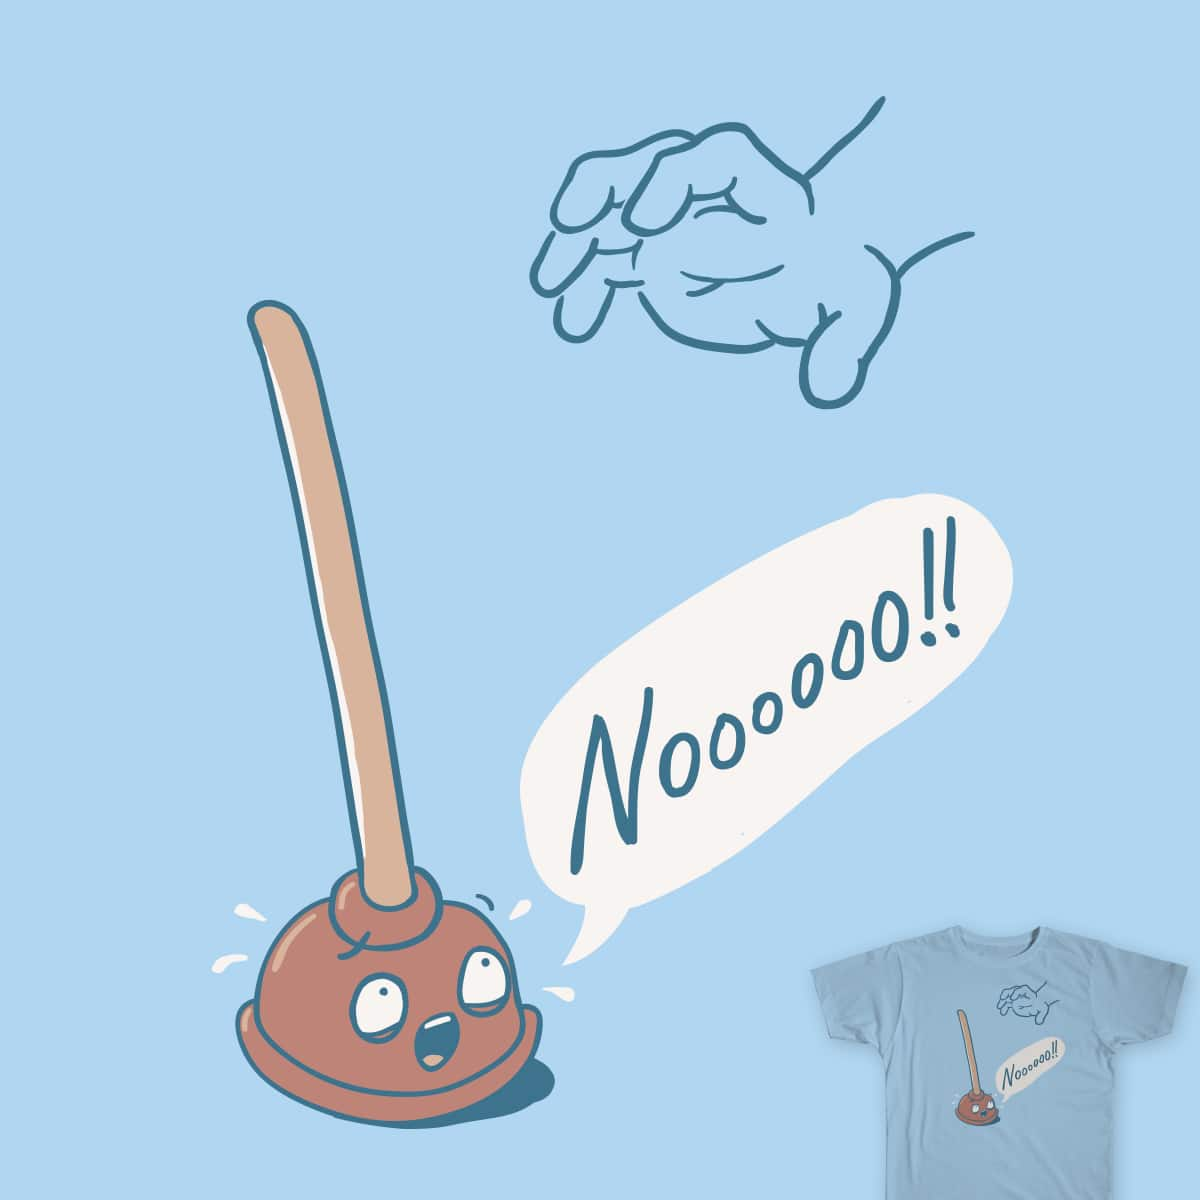 Pending Plunge by murraymullet and davidfromdallas on Threadless